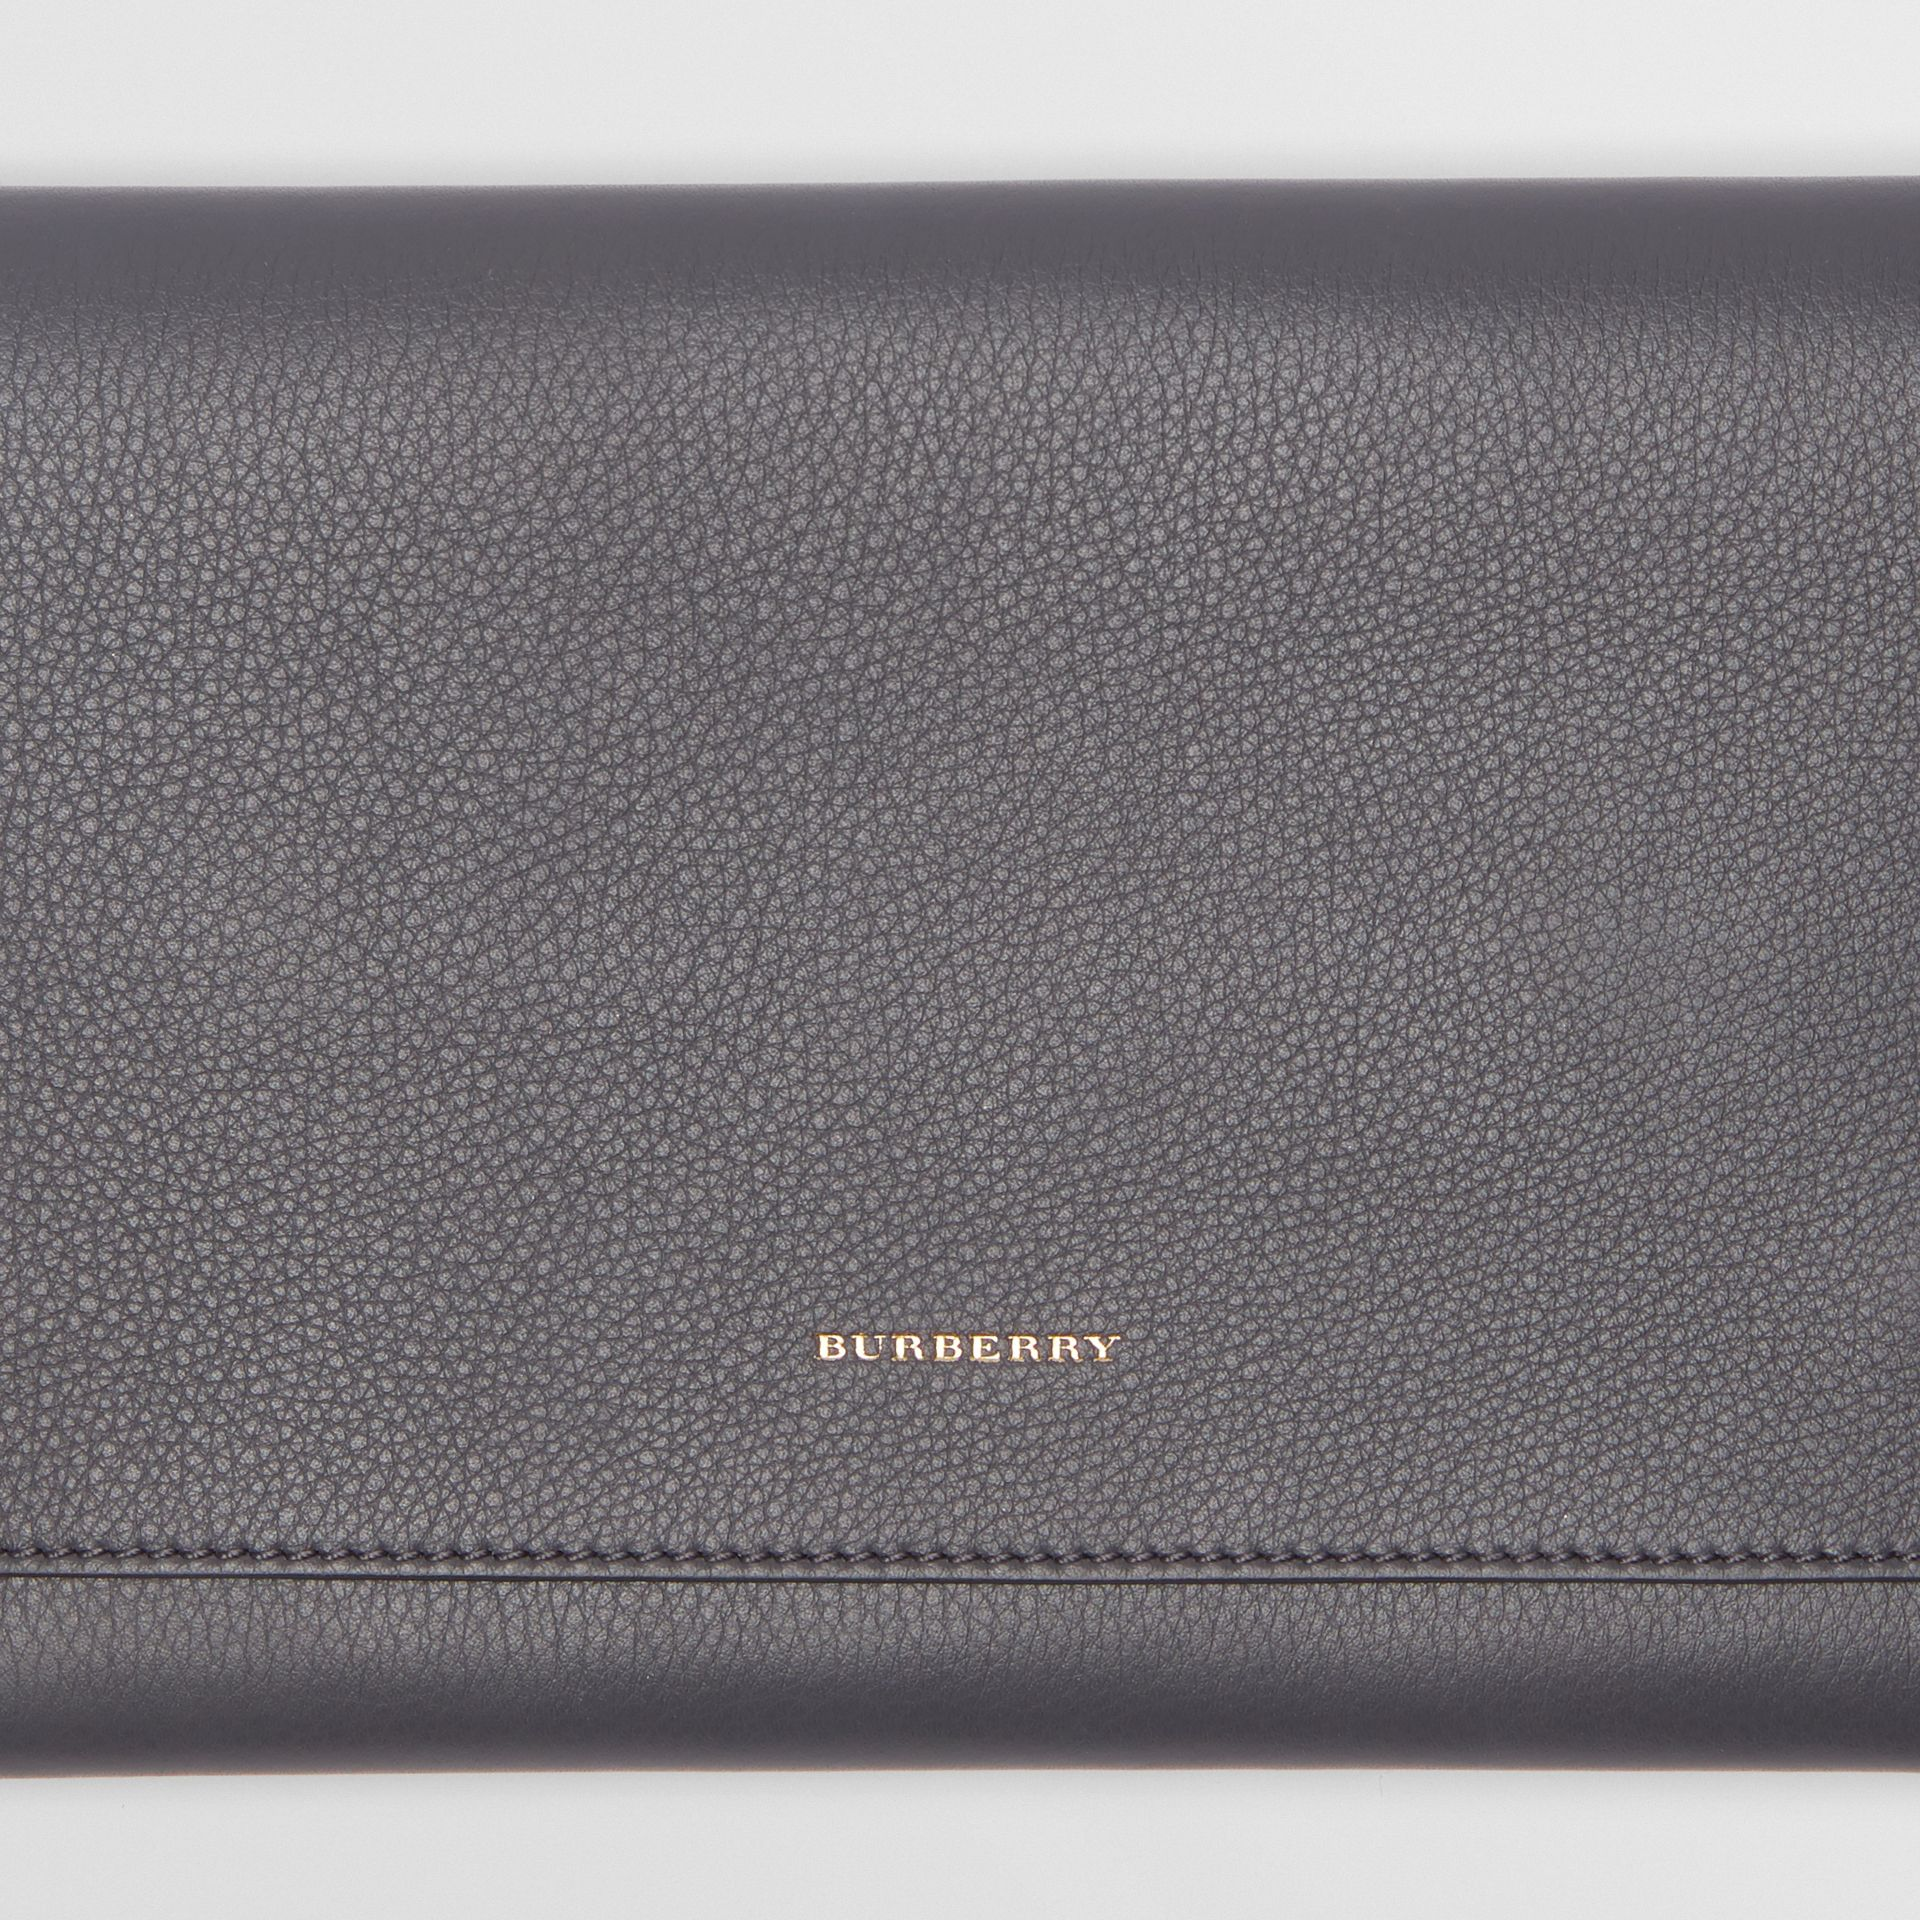 Two-tone Leather Wristlet Clutch in Charcoal Grey - Women | Burberry - gallery image 1